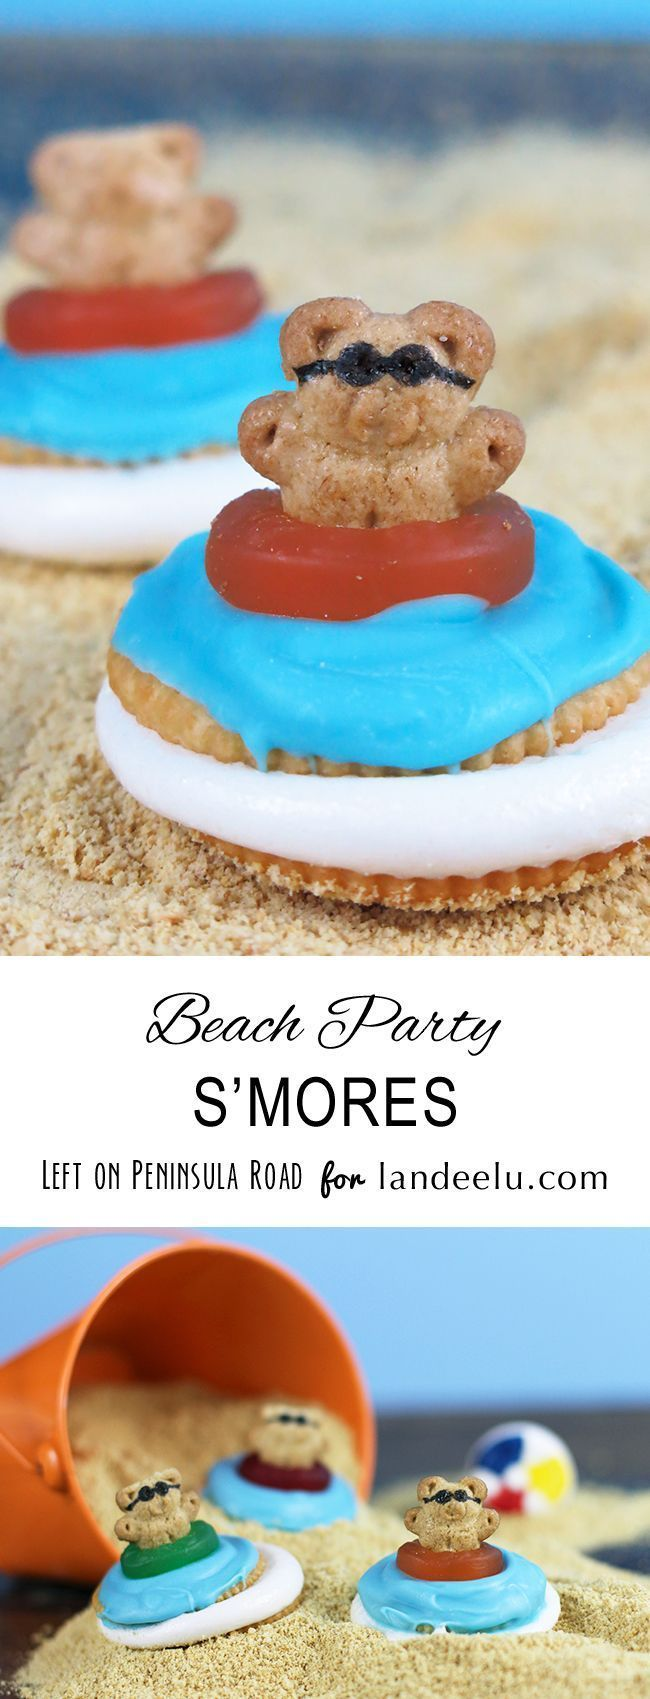 Teddy Grahams Beach Party S'mores. Easy summer Treats Recipe and fun food craft for the kids!